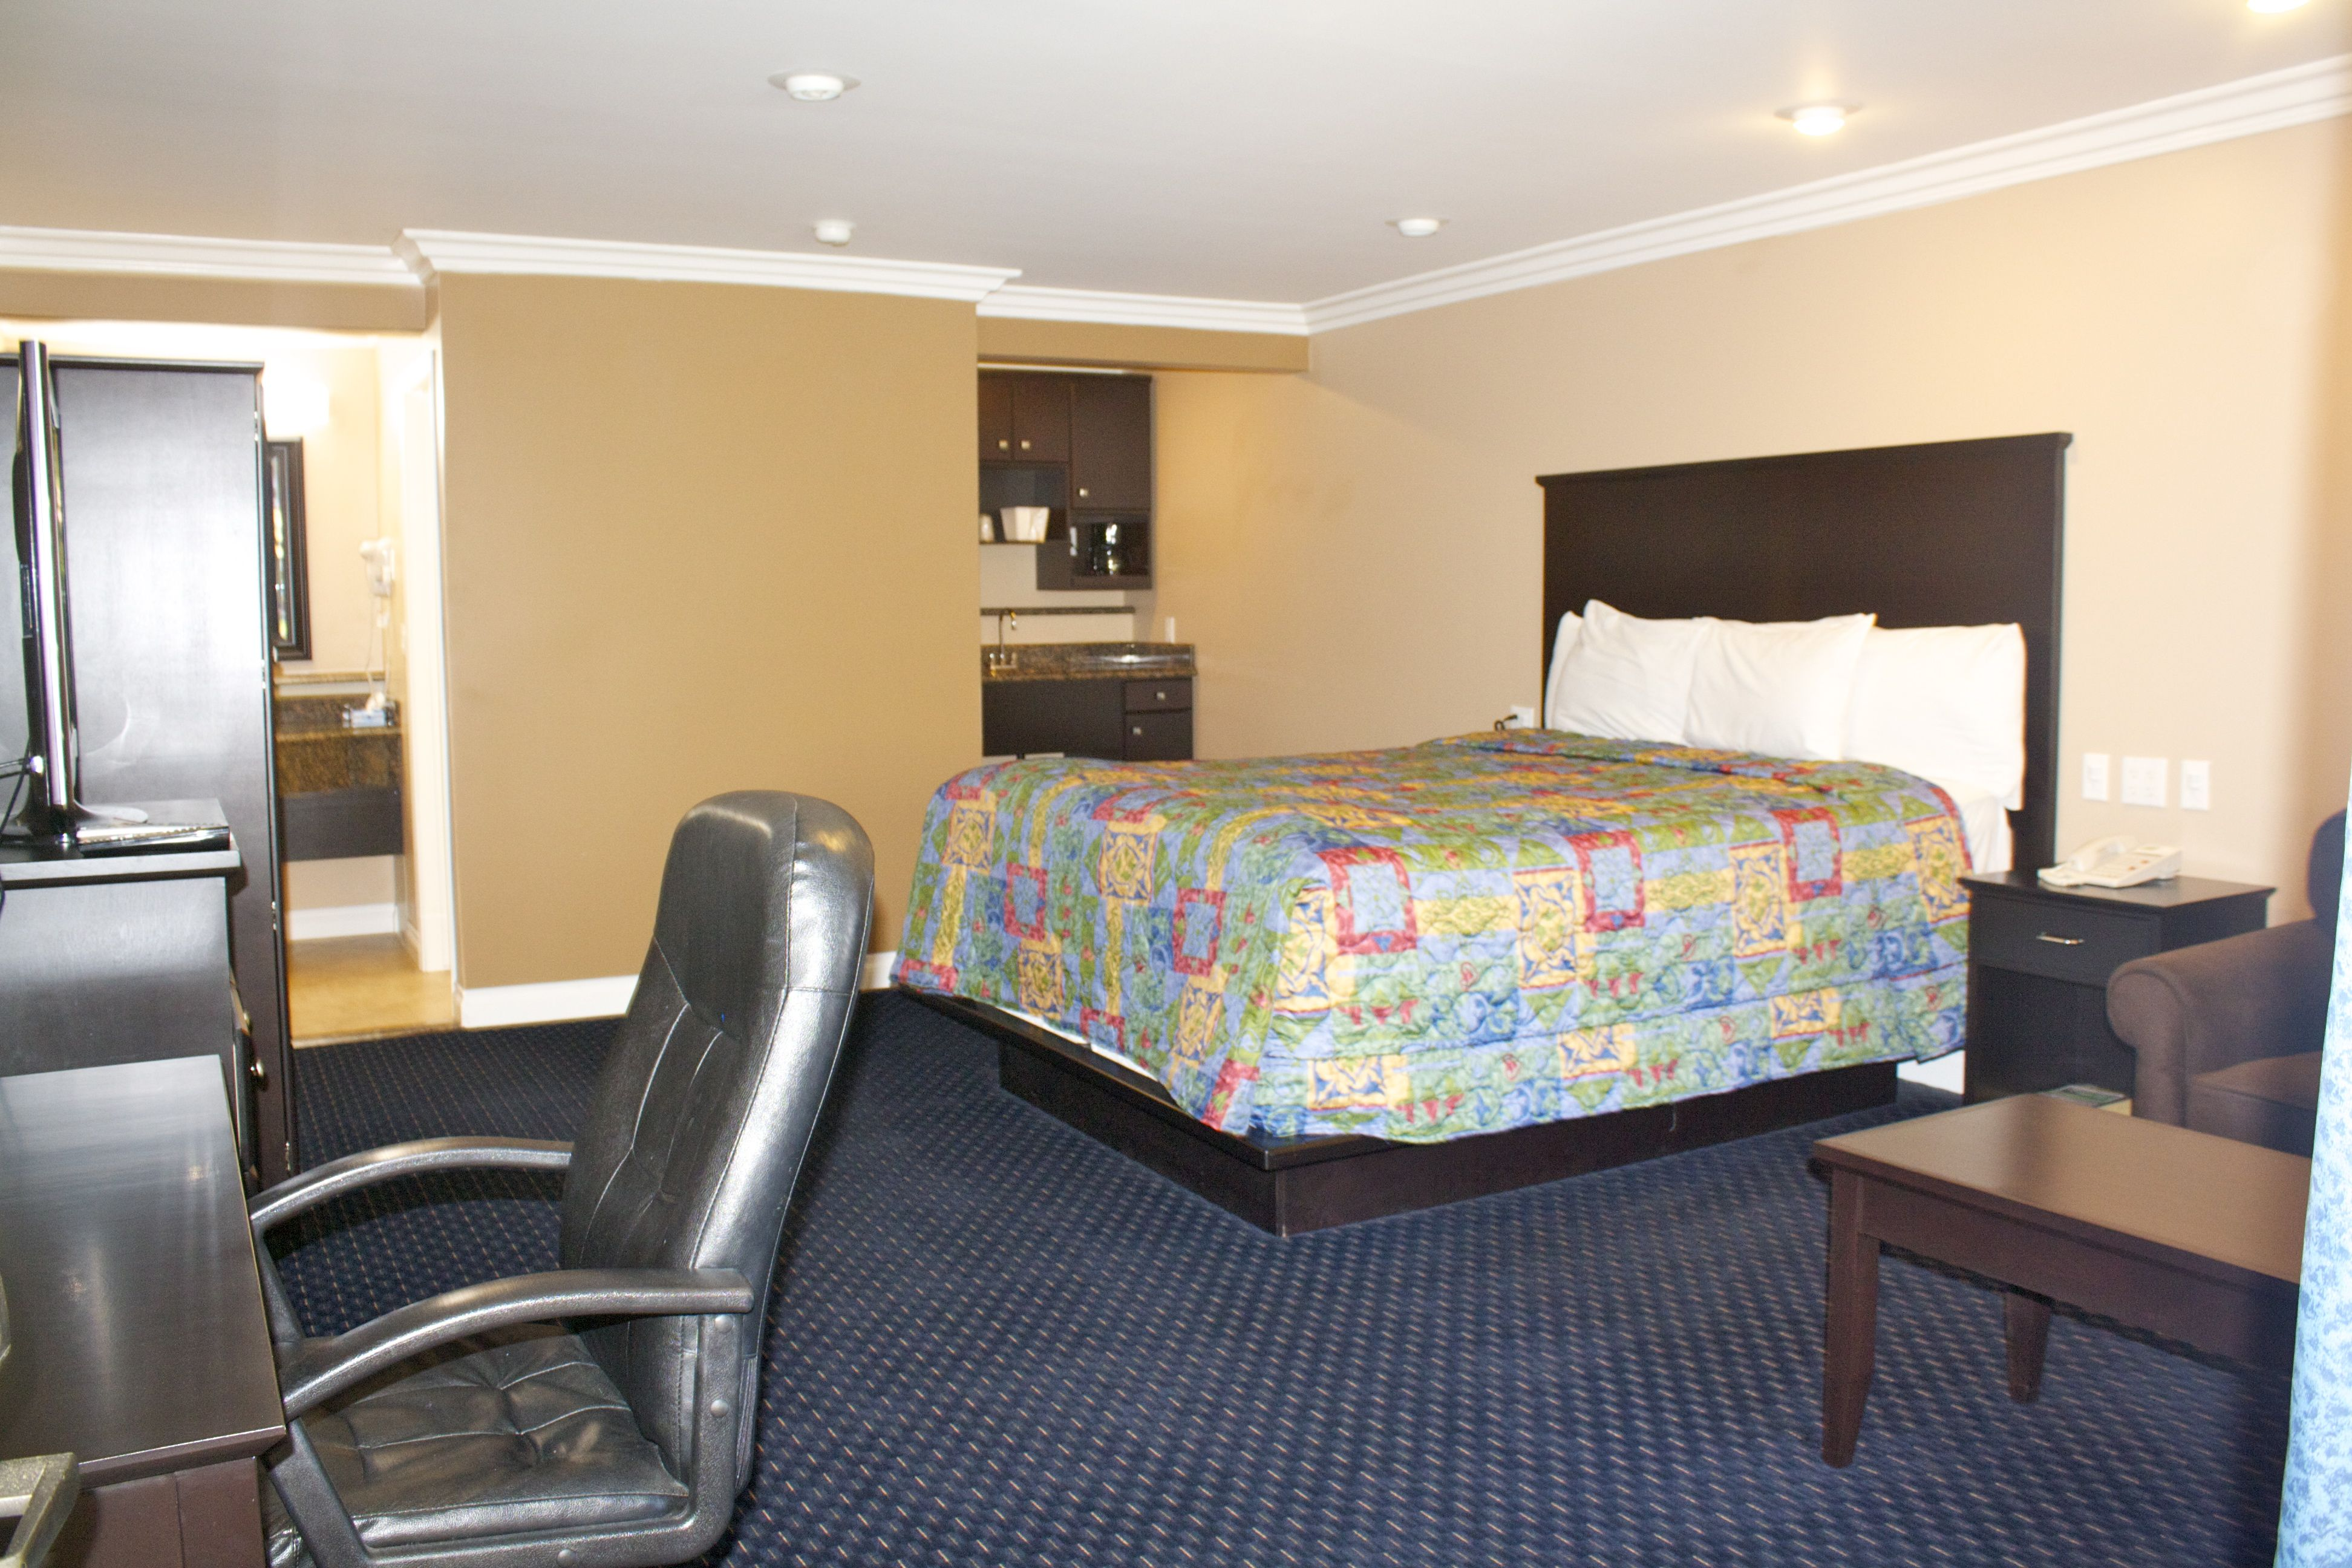 Stay at spacious King room, fearing amenities including